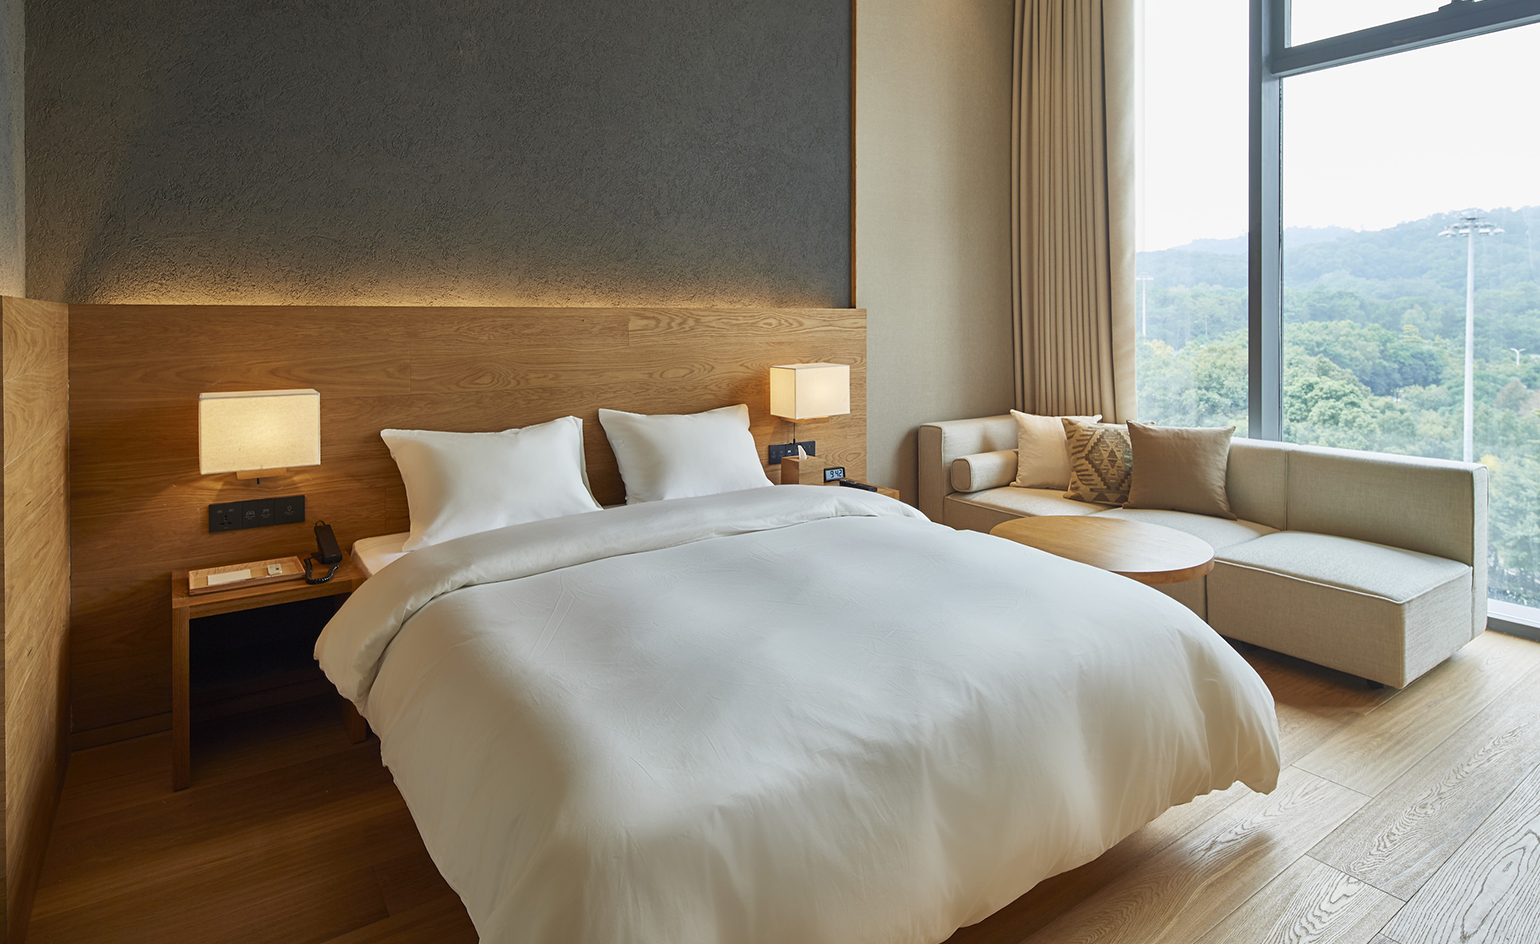 Muji brings its masterfully minimalist aesthetic to hotels